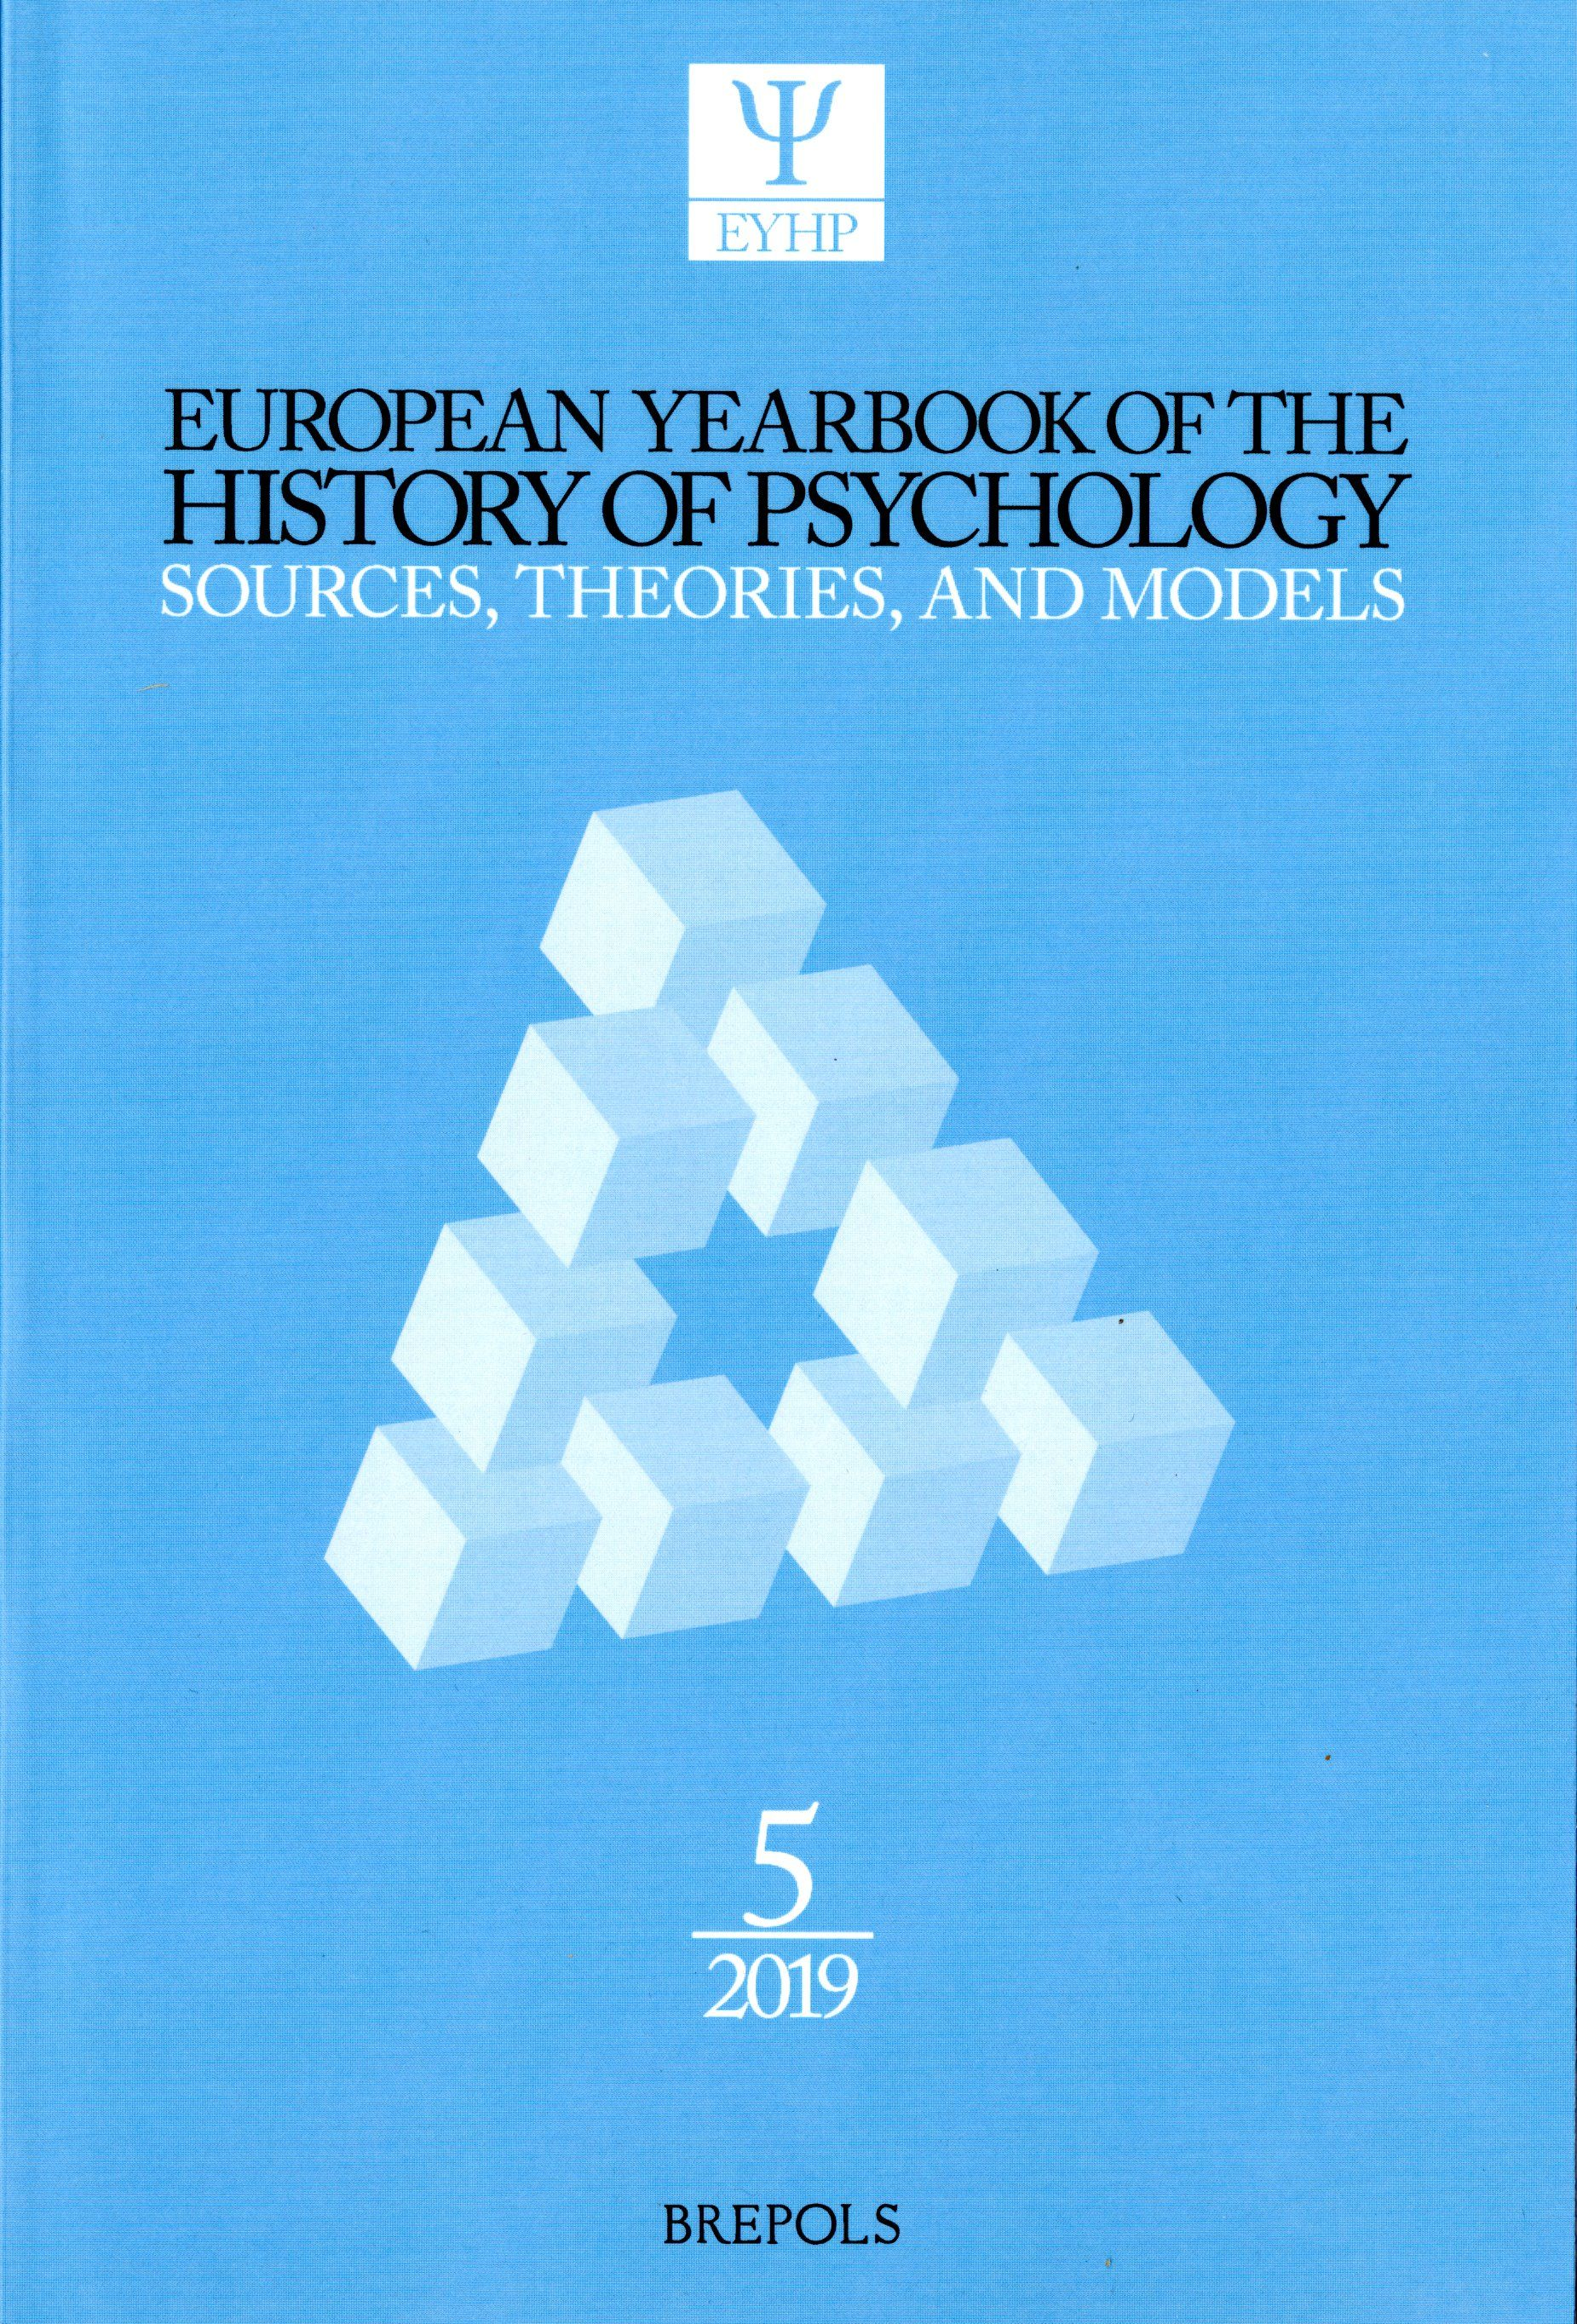 European Yearbook of the History of Psychology (2019)